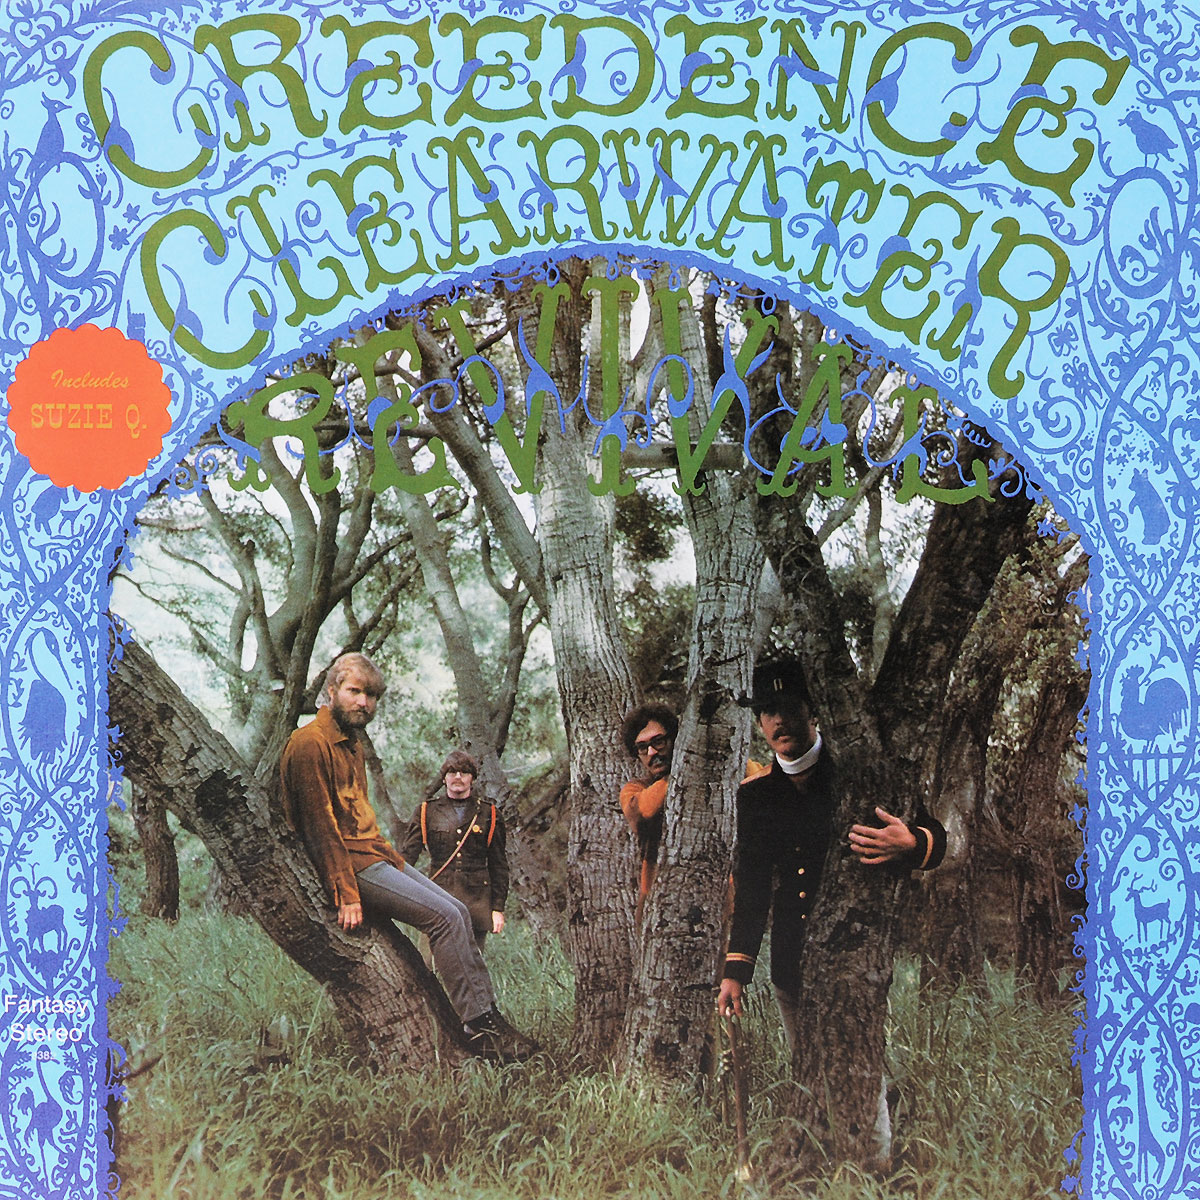 Creedence Clearwater Revival Creedence Clearwater Revival. Creedence Clearwater Revival (LP) creedence clearwater revival – willy and the poor boys lp